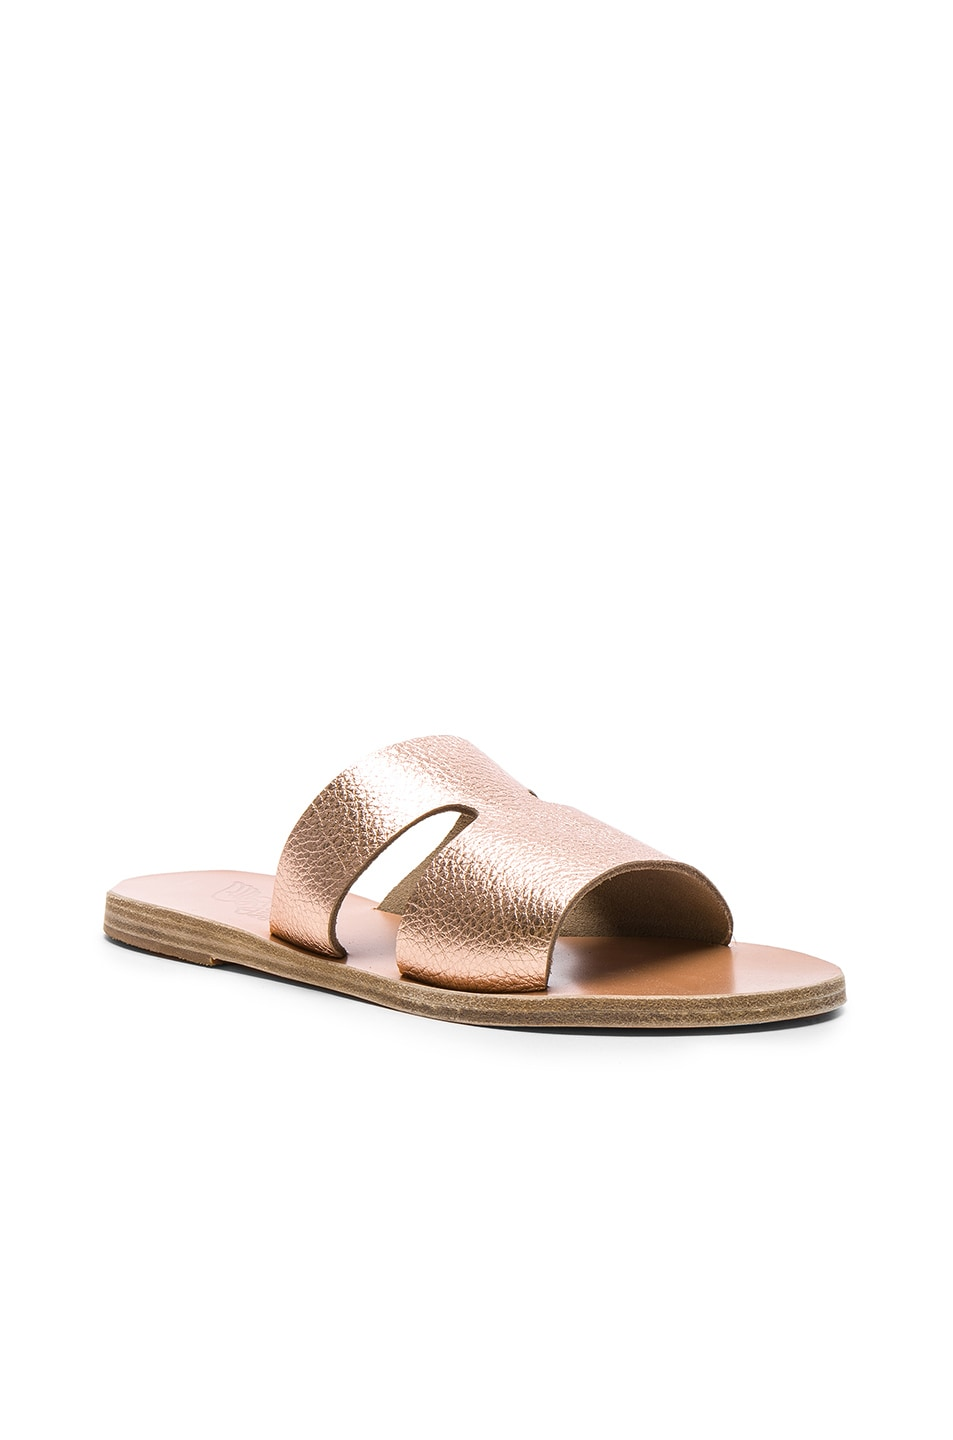 Image 2 of Ancient Greek Sandals Metallic Leather Apteros Sandals in Pink Metallic